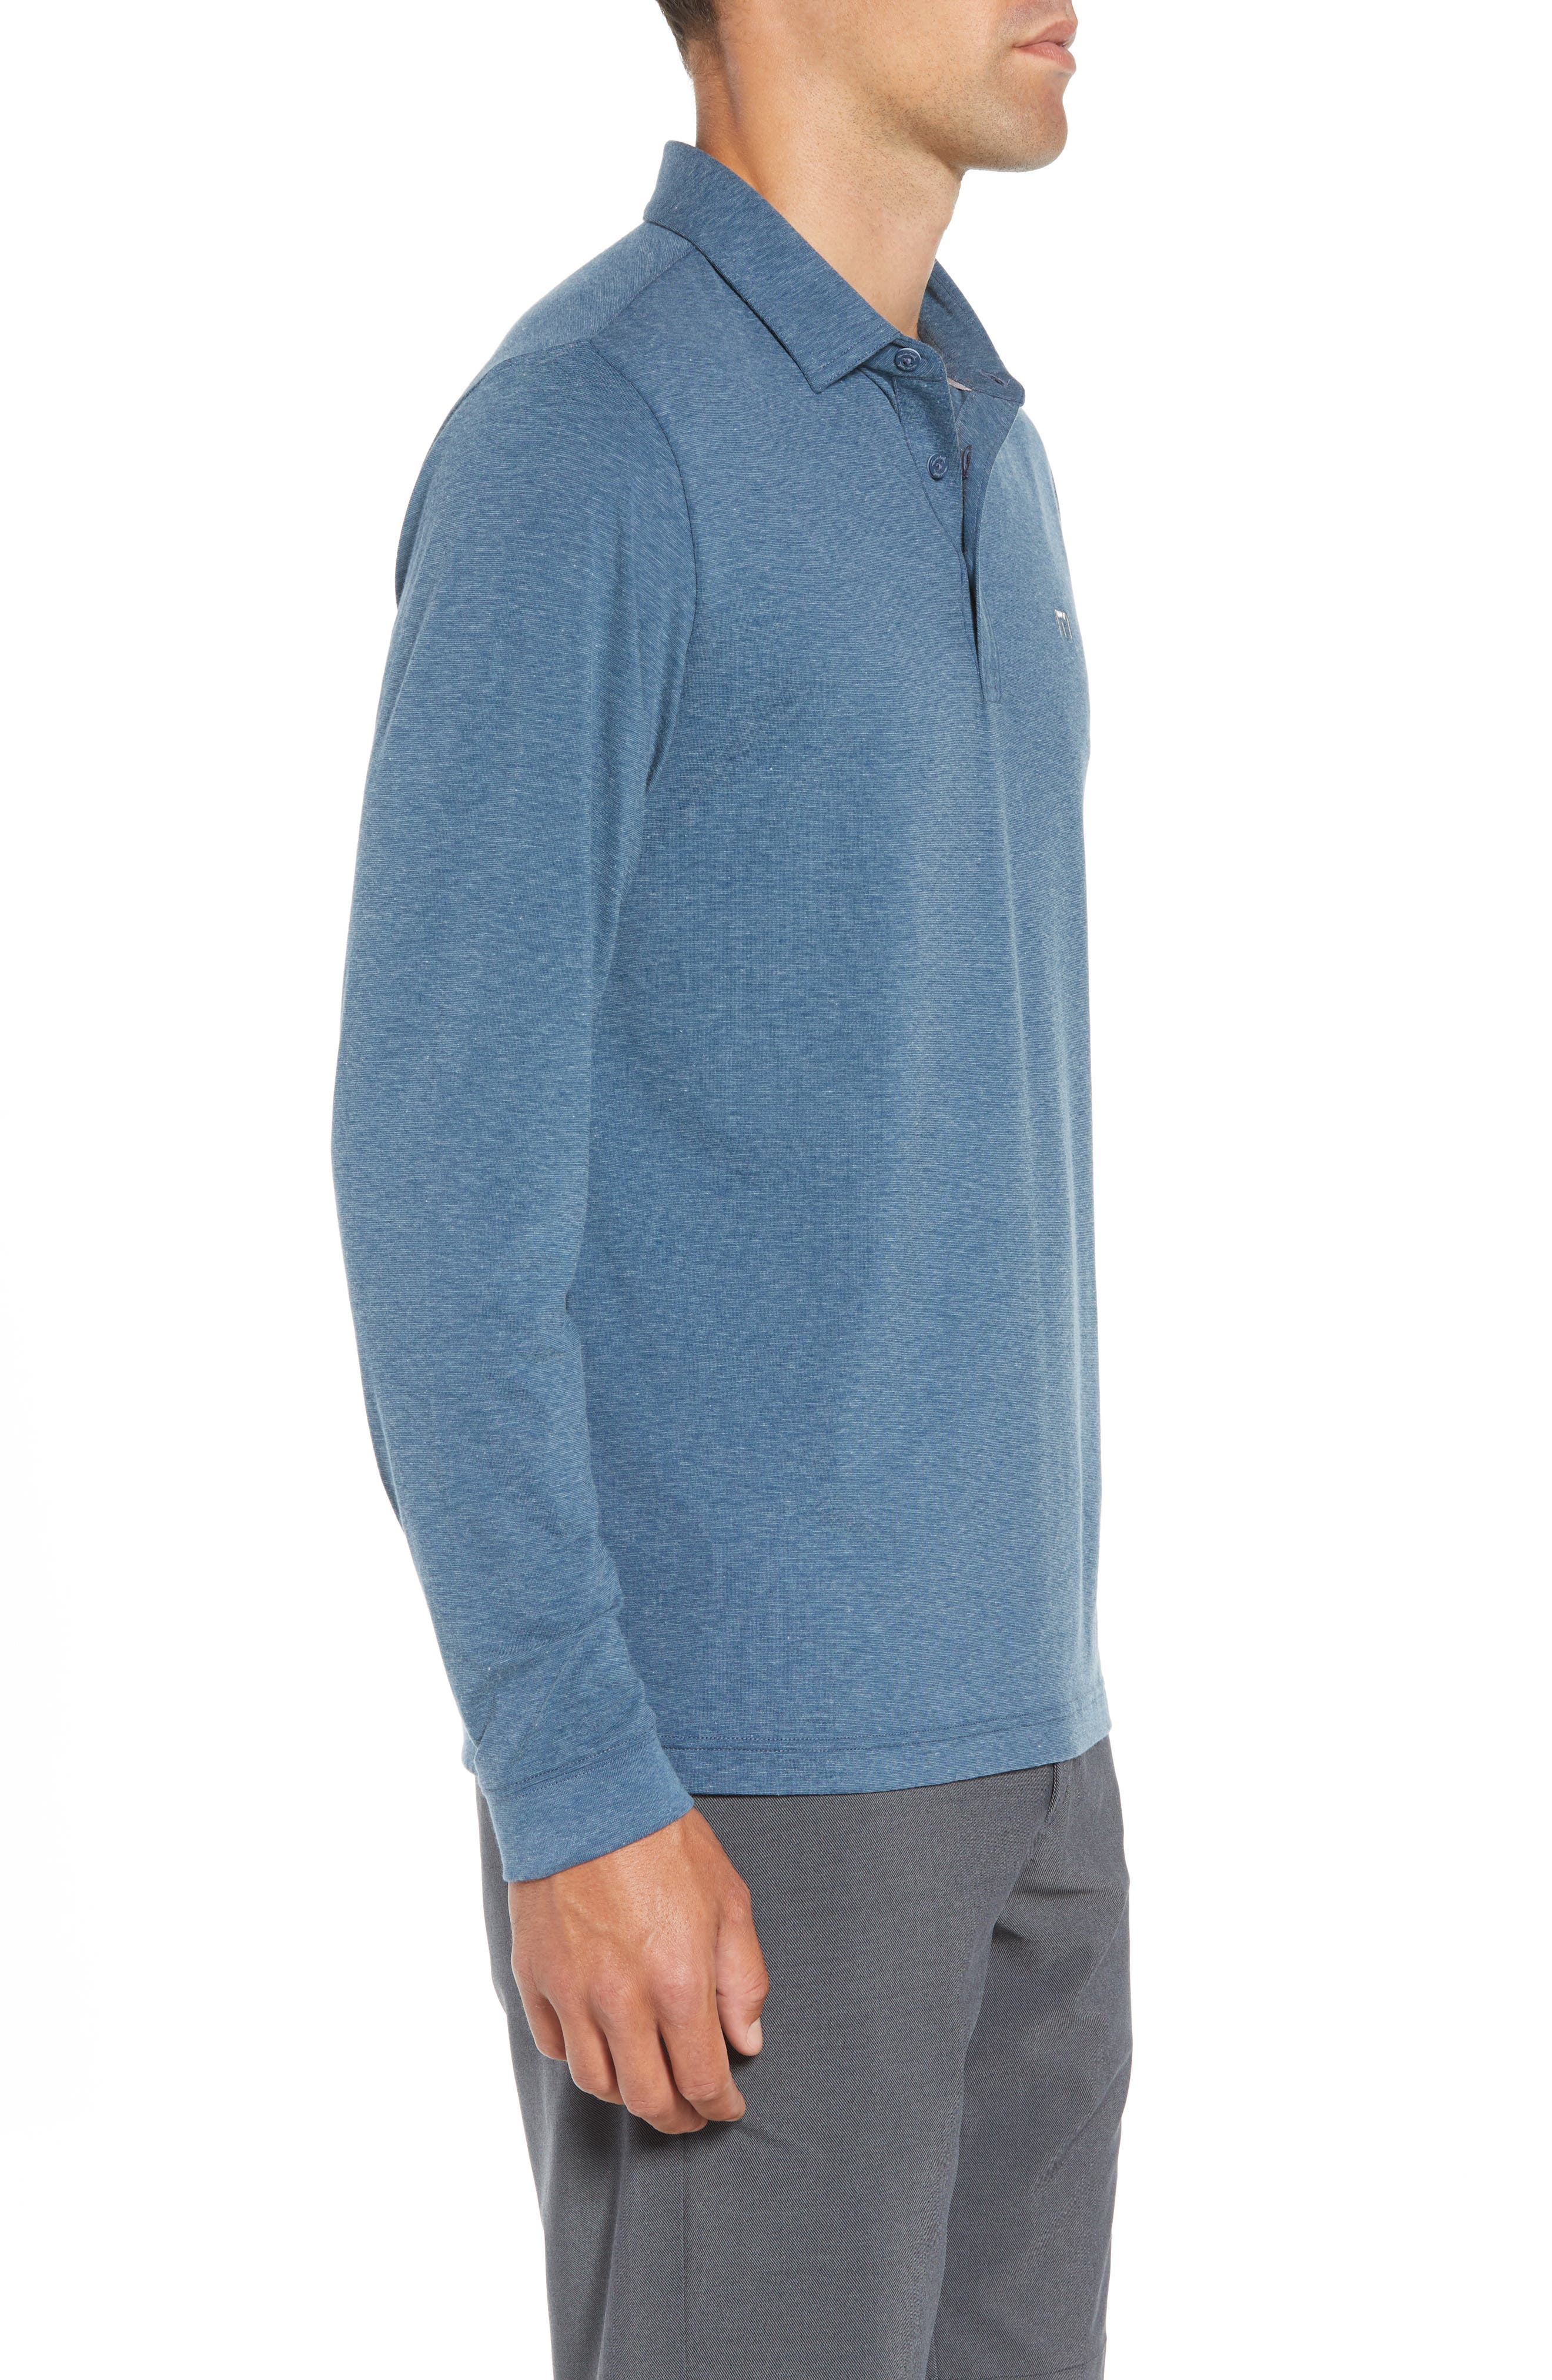 Backup Plan Regular Fit Polo,                             Alternate thumbnail 3, color,                             TRADEWINDS/ BLUE WING TEAL